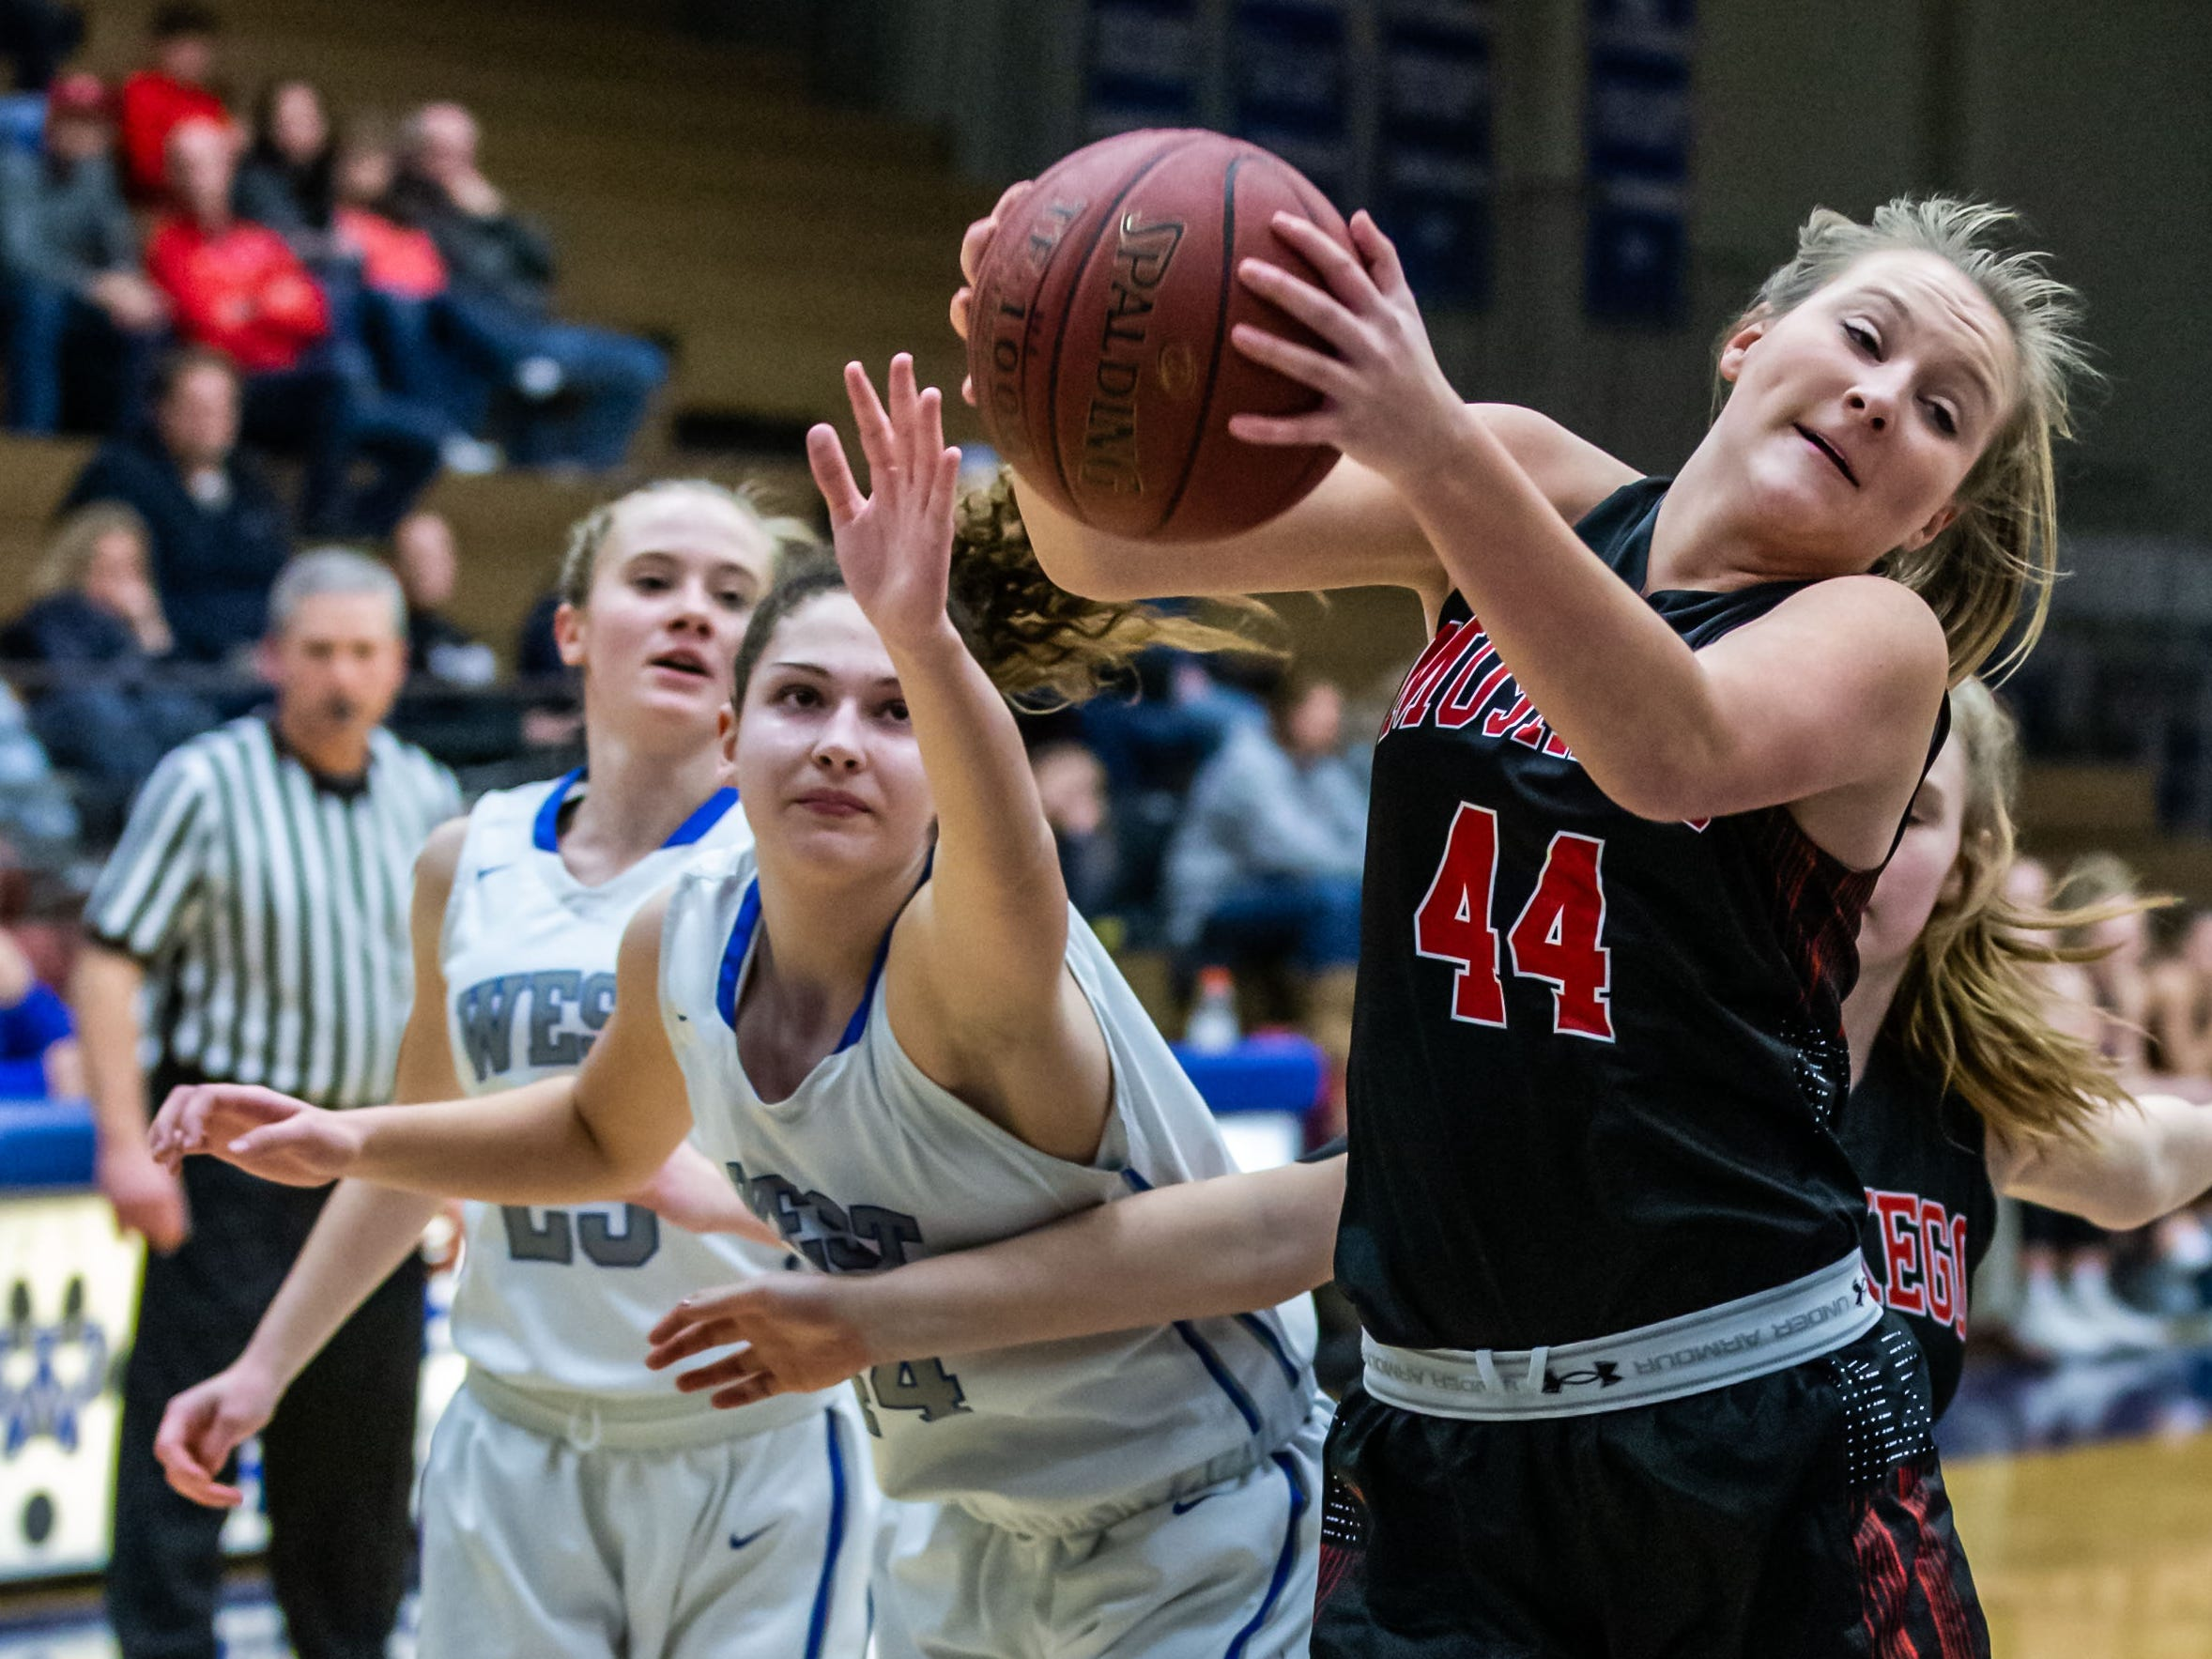 Muskego's Alison Mims (44) pulls down a rebound during the game at Waukesha West on Friday, Jan. 25, 2019.